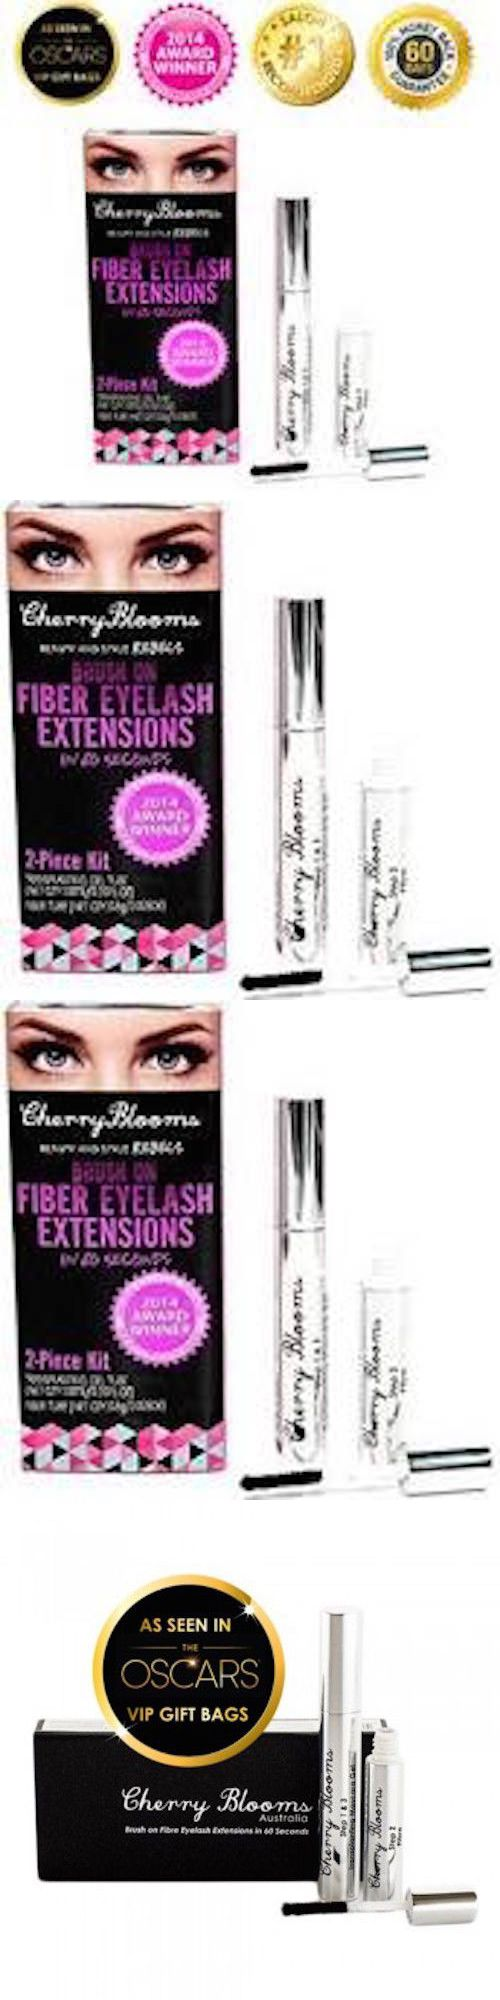 Mascara: Cherry Blooms Eyelash Extensions-Brush On Fiber Lashes In 60 Seconds (Authentic) BUY IT NOW ONLY: $35.99